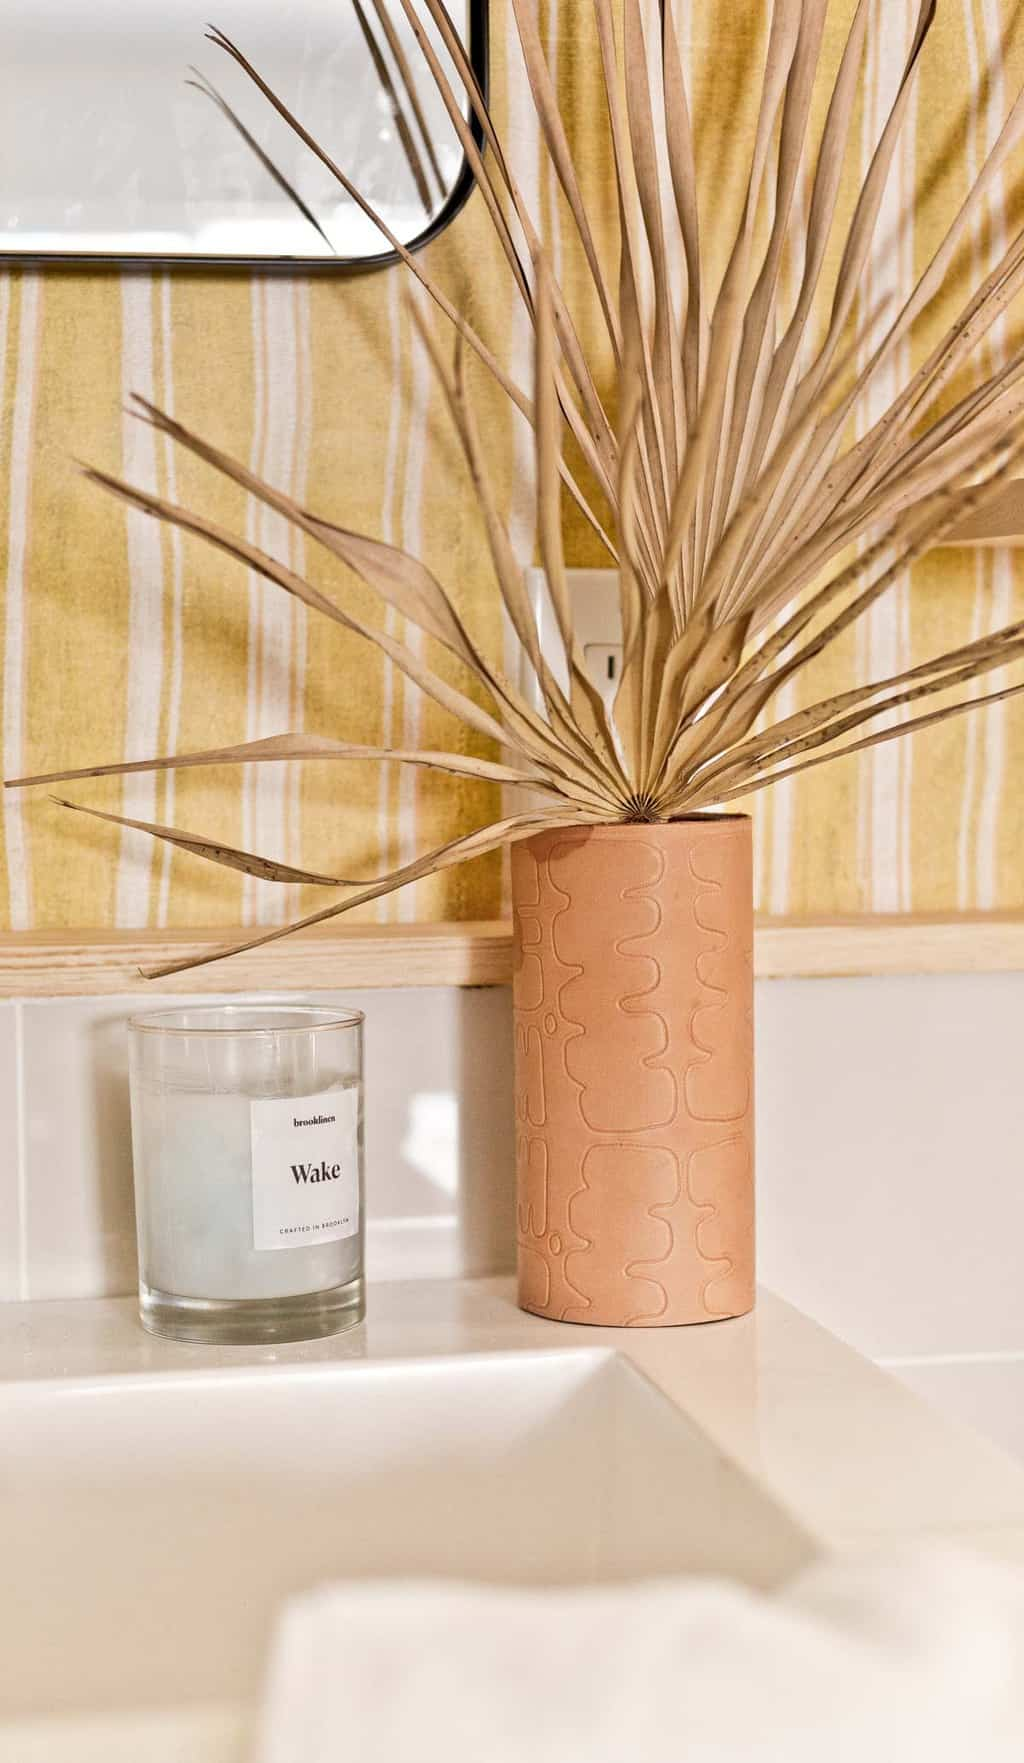 Embossed leather vase with funky pattern in a striped, colorful bathroom.